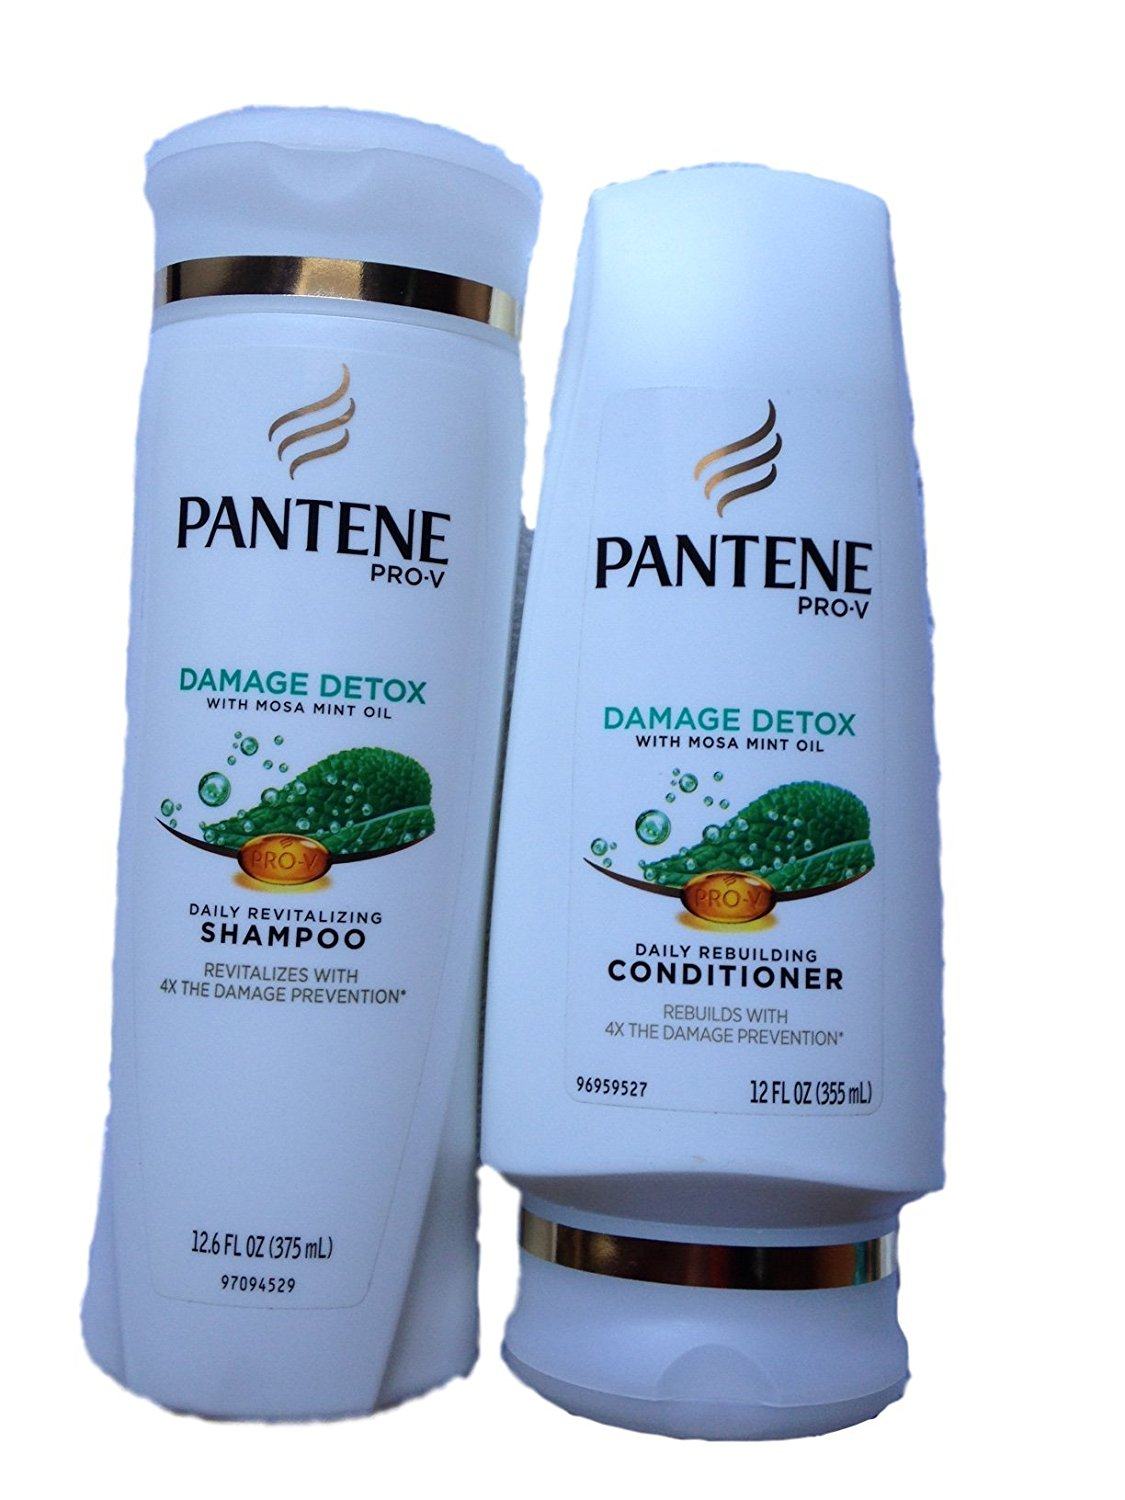 Pantene Pro-V Shampoo & Conditioner Set, Damage Detox with Mosa Mint Oil, 12 Ounce Each by Pantene